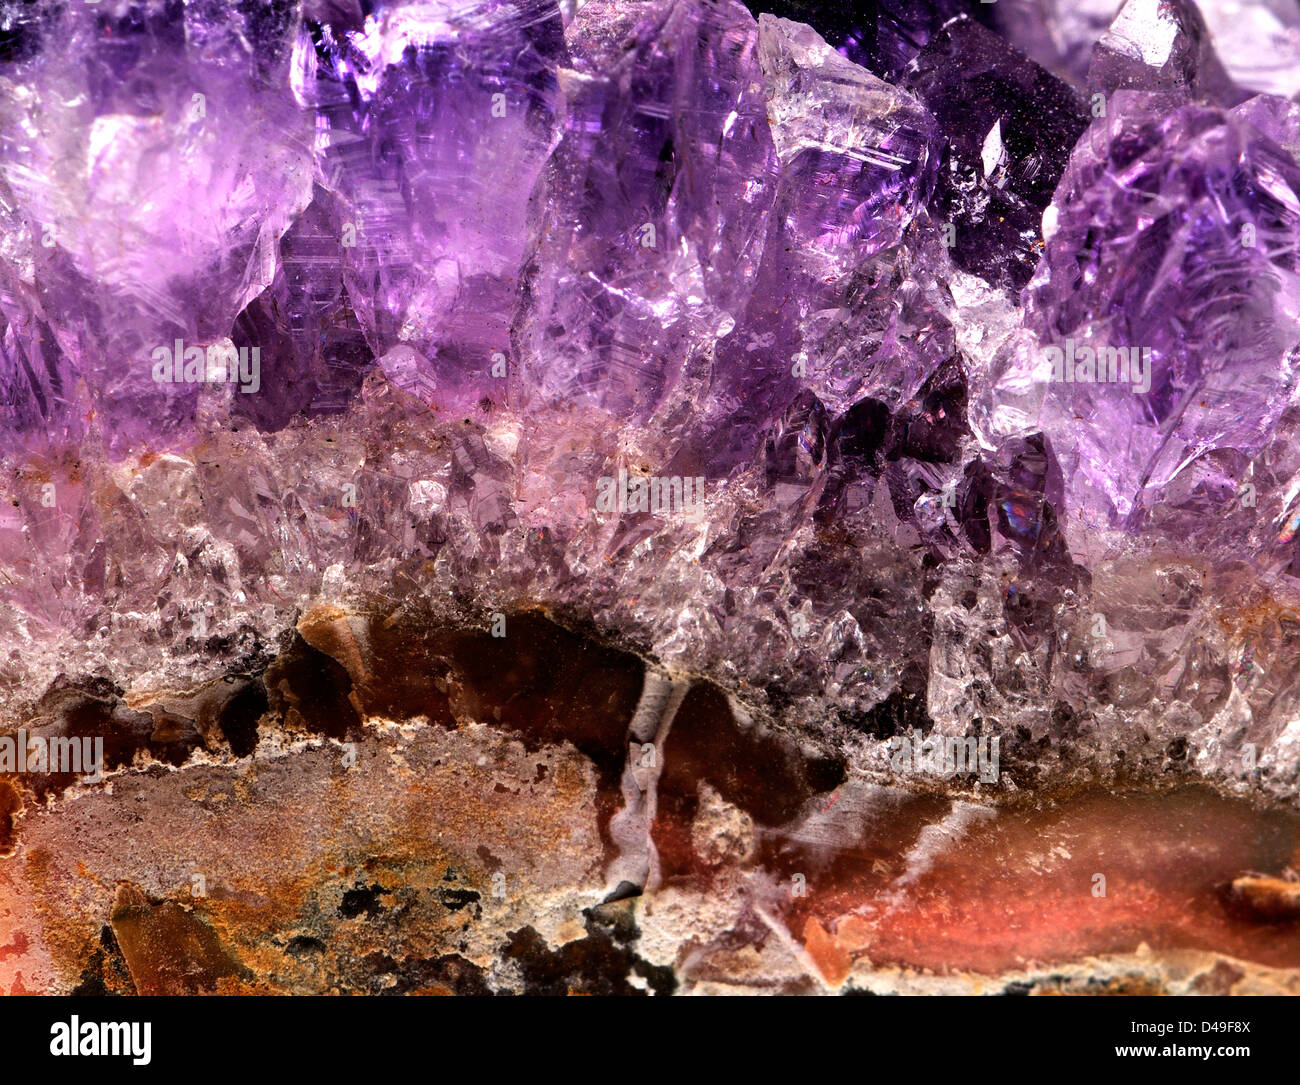 Amethyst crystals (purple quartz) on matrix - Stock Image